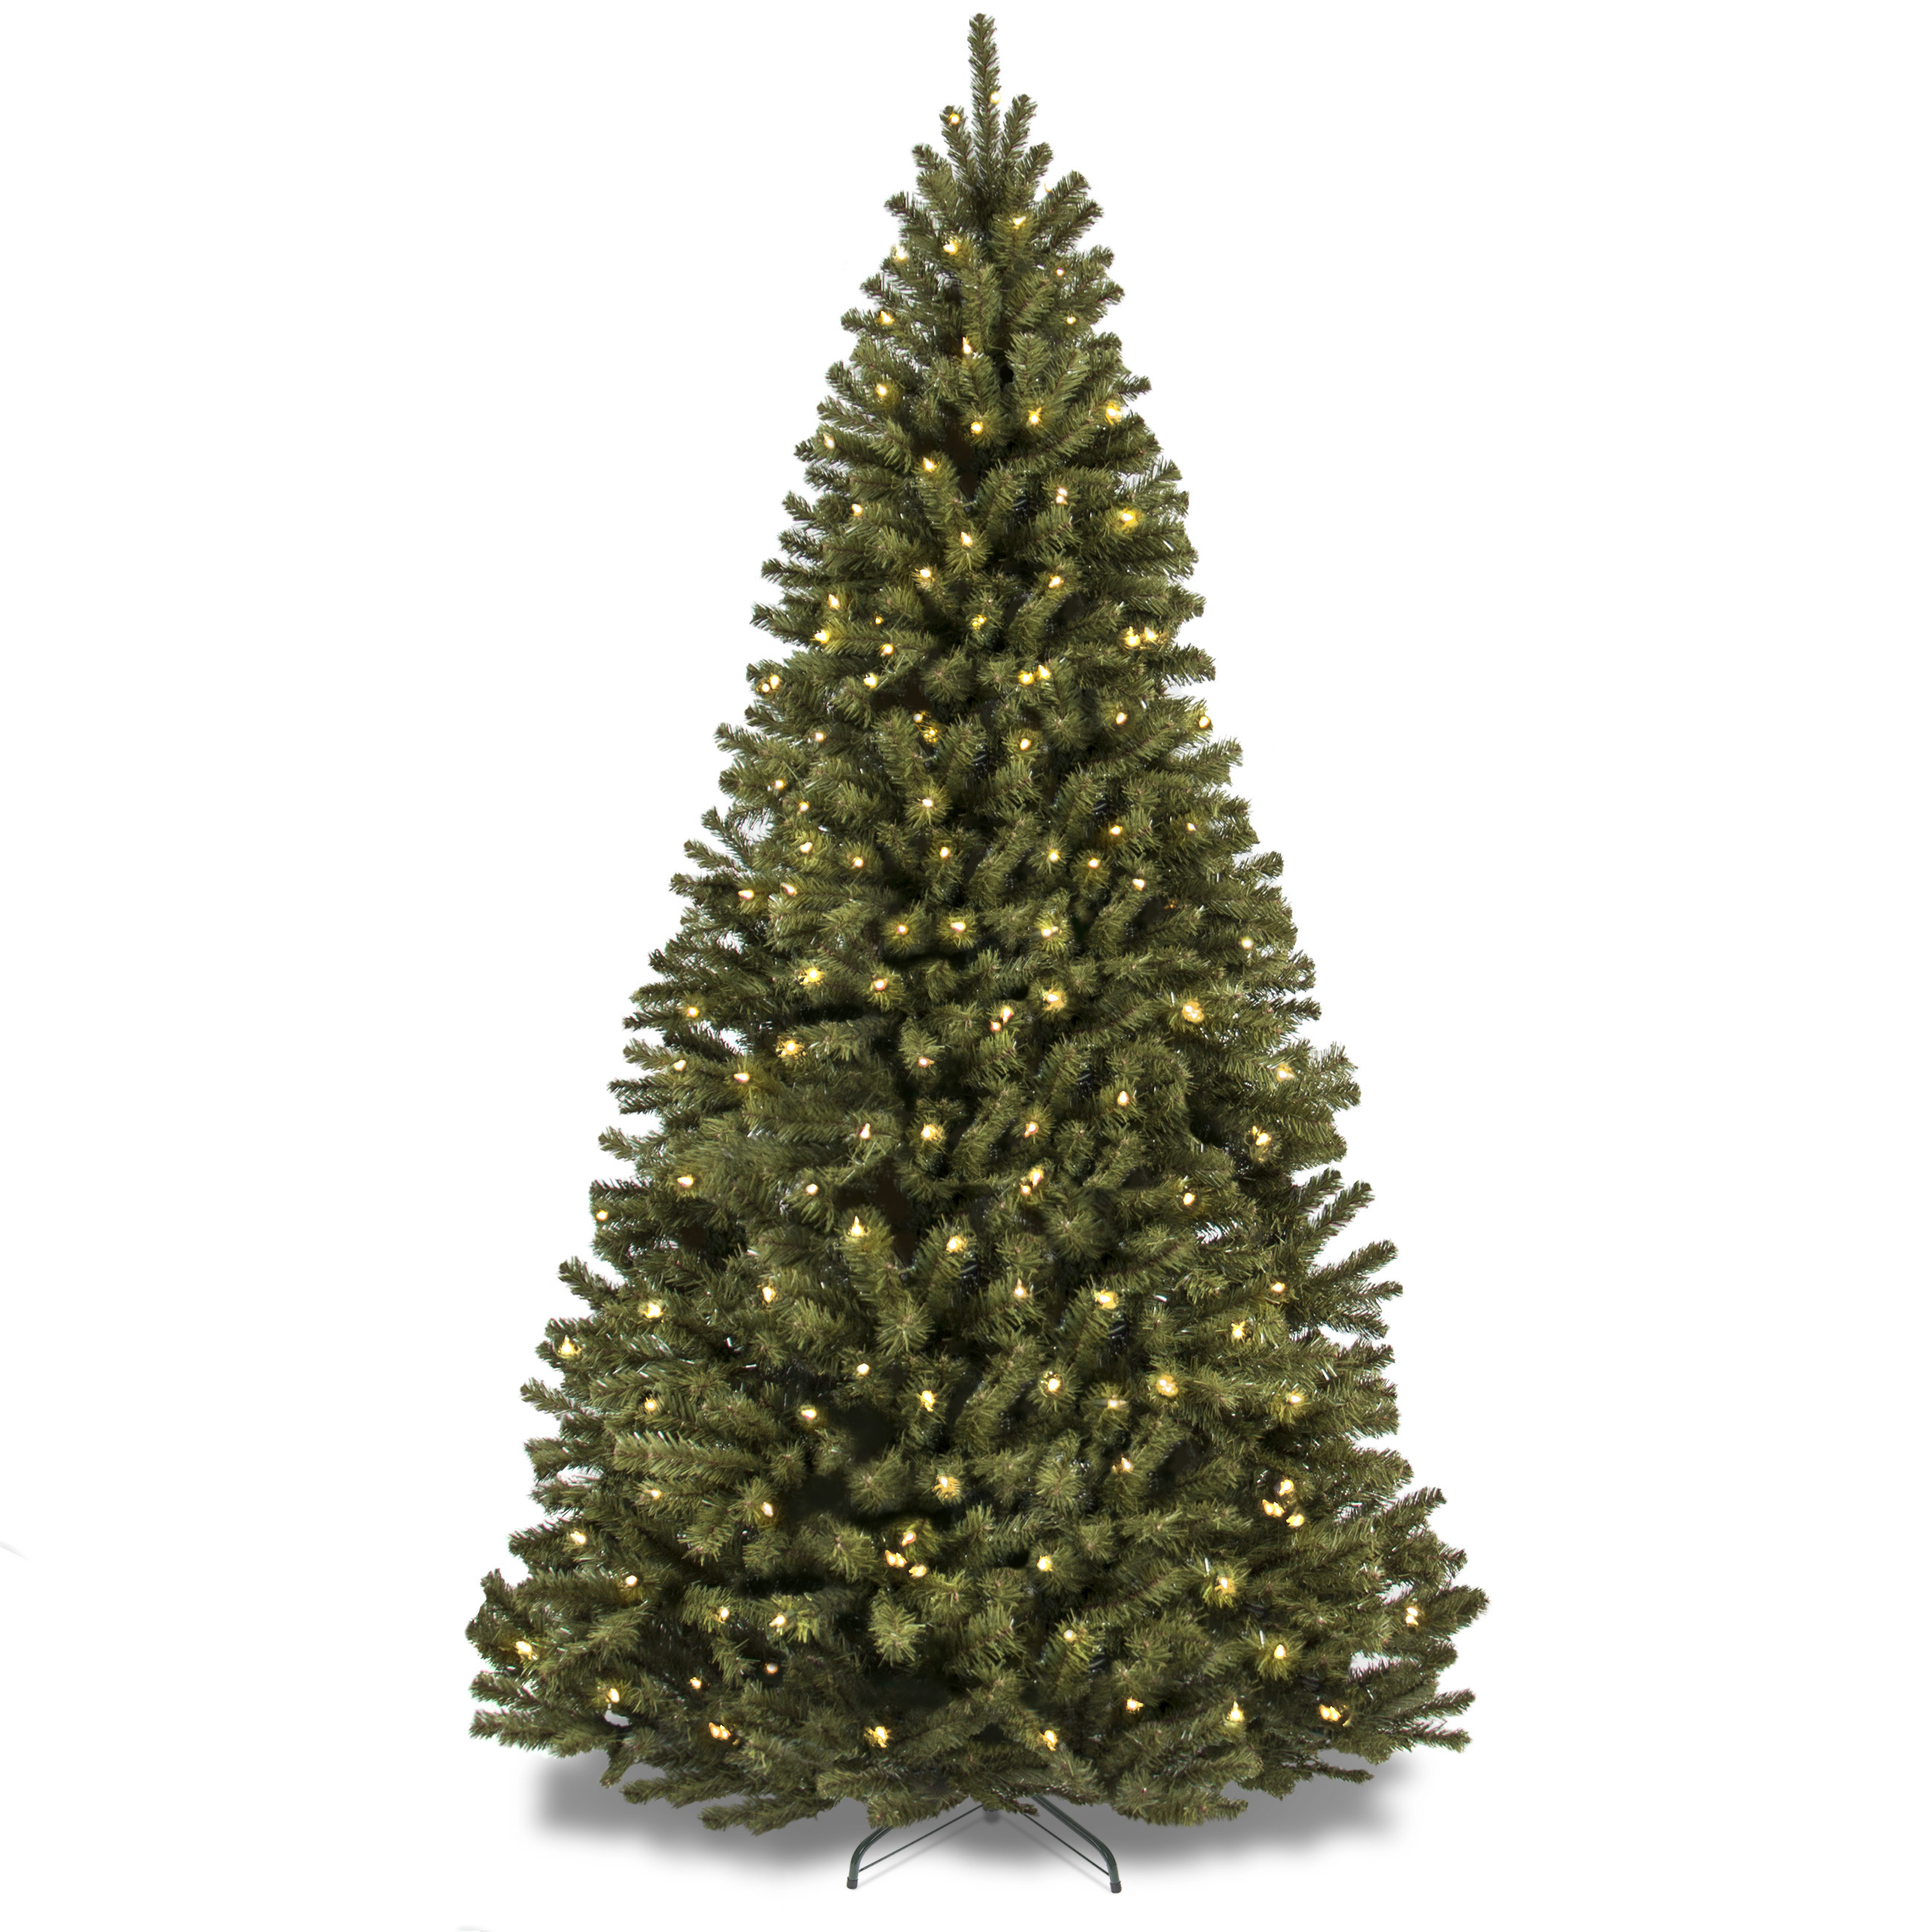 Holiday Time Artificial Christmas Trees Pre-Lit 7.5\' Flocked ...